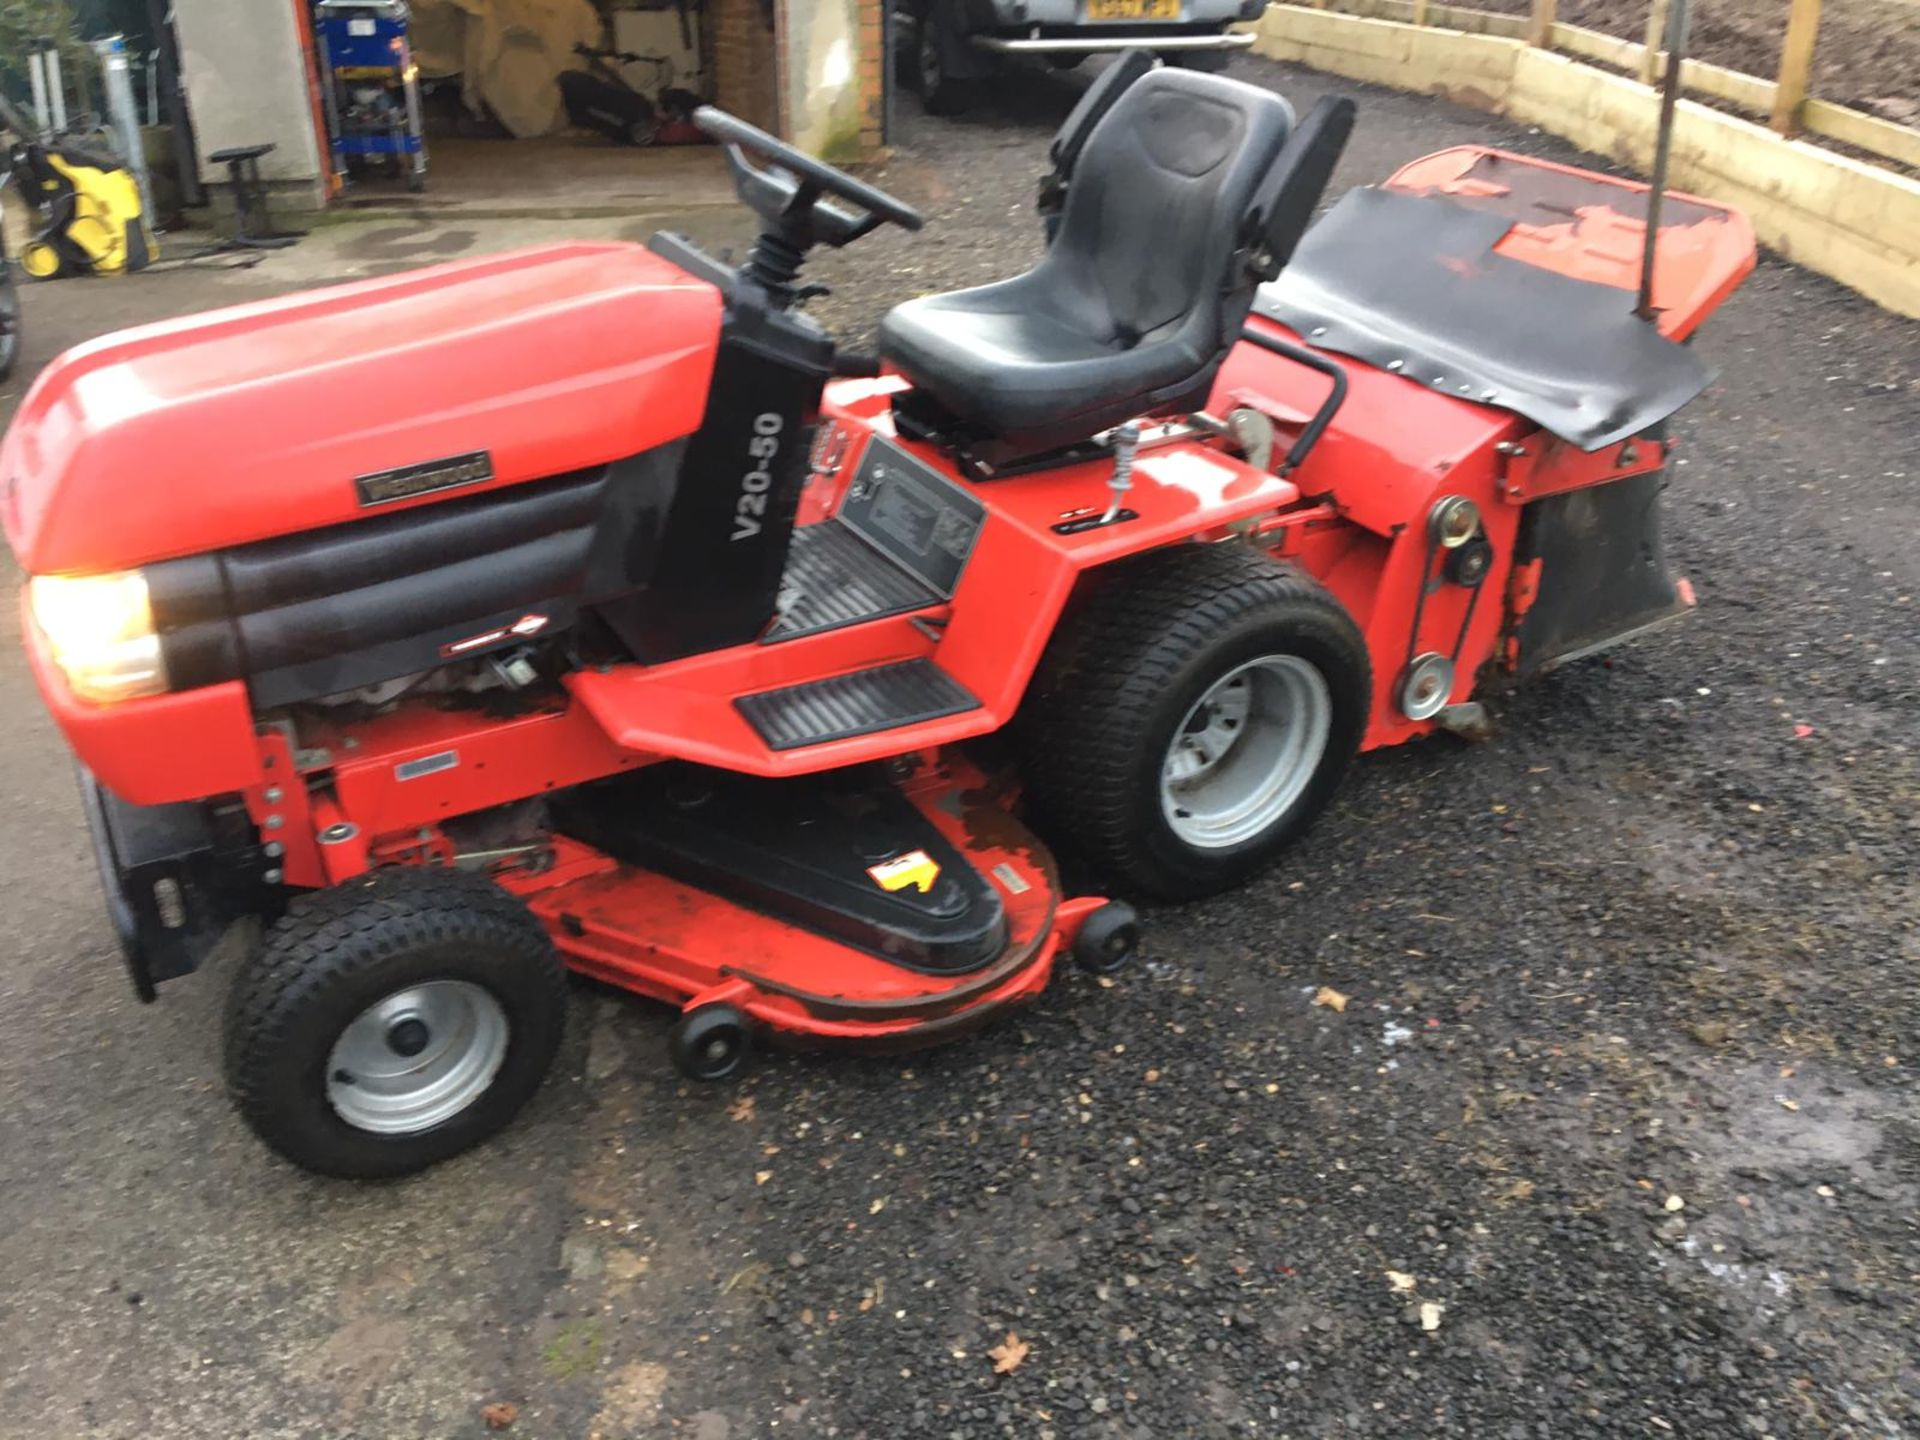 Lot 89 - WESTWOOD V20-50 RIDE ON LAWN MOWER / LAWN TRACTOR, YEAR 2006 *NO VAT*